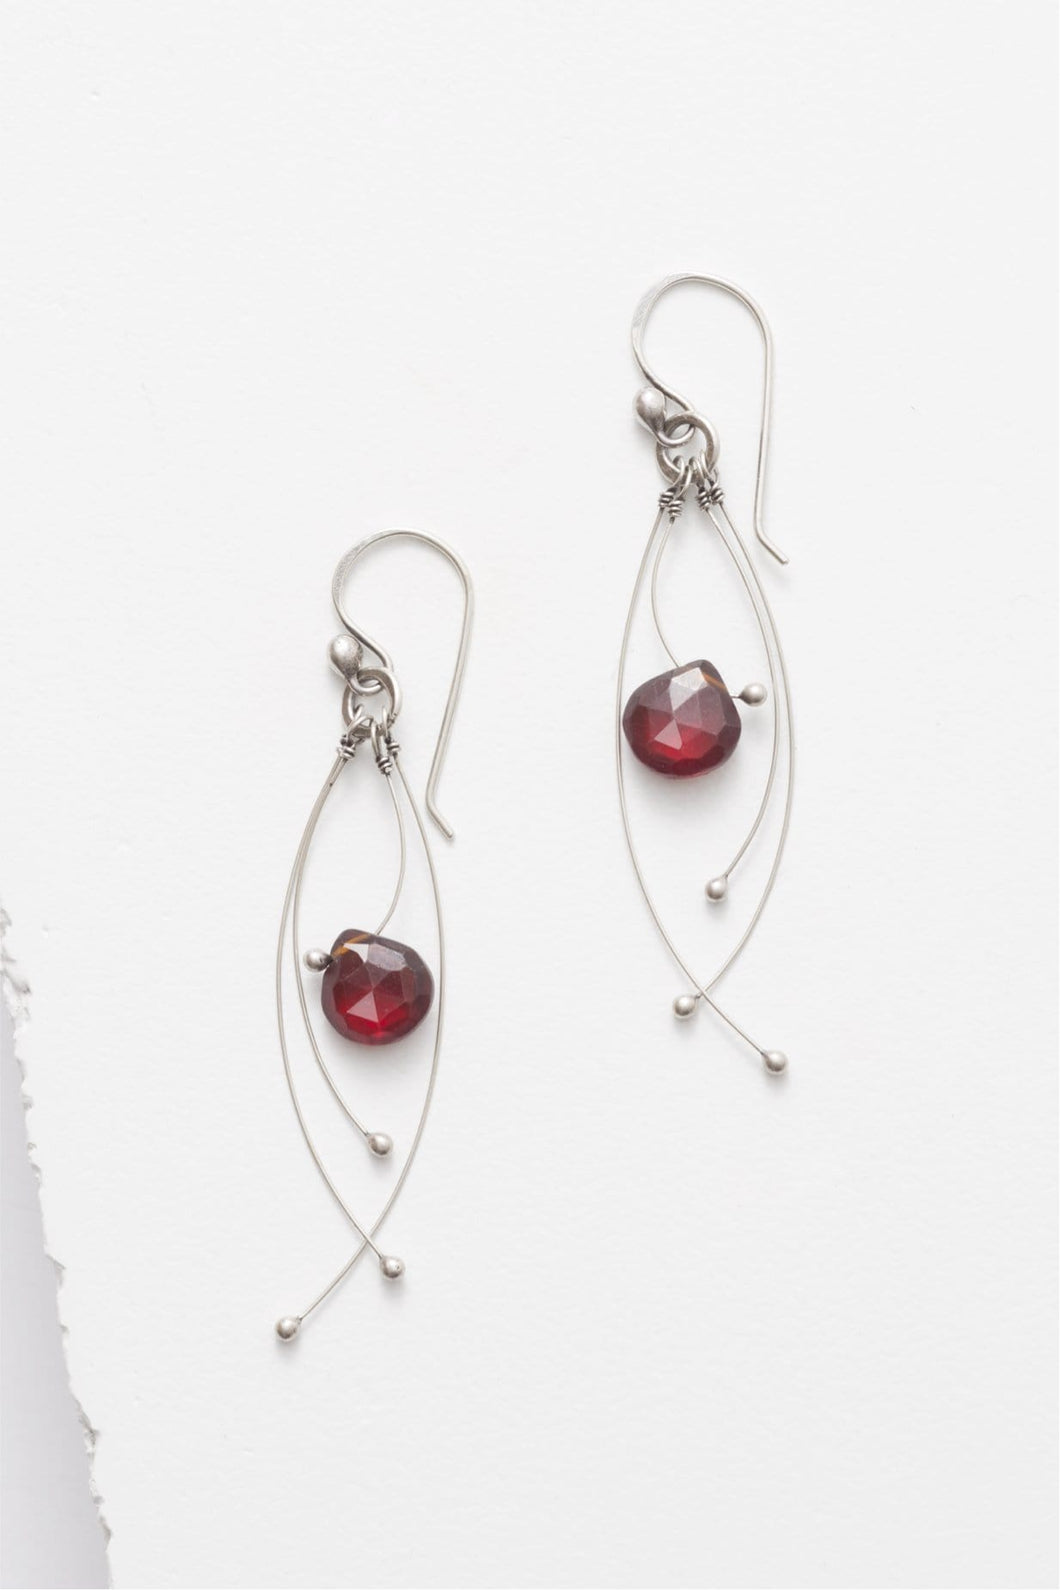 Tickle earrings, in red garnet or freshwater pearl